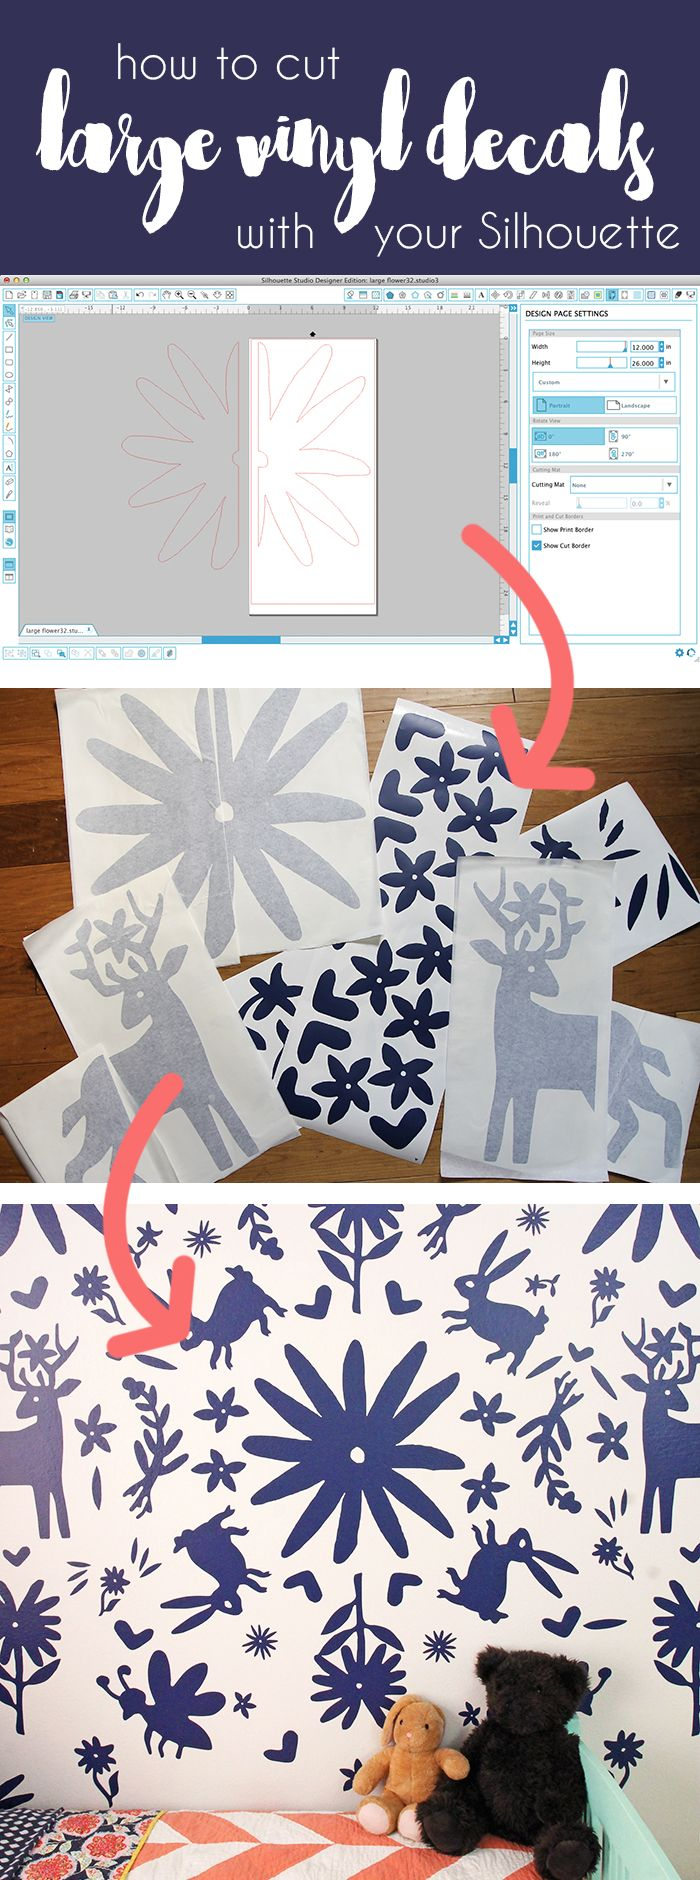 631 Best Images About Silhouette Vinyl On Pinterest